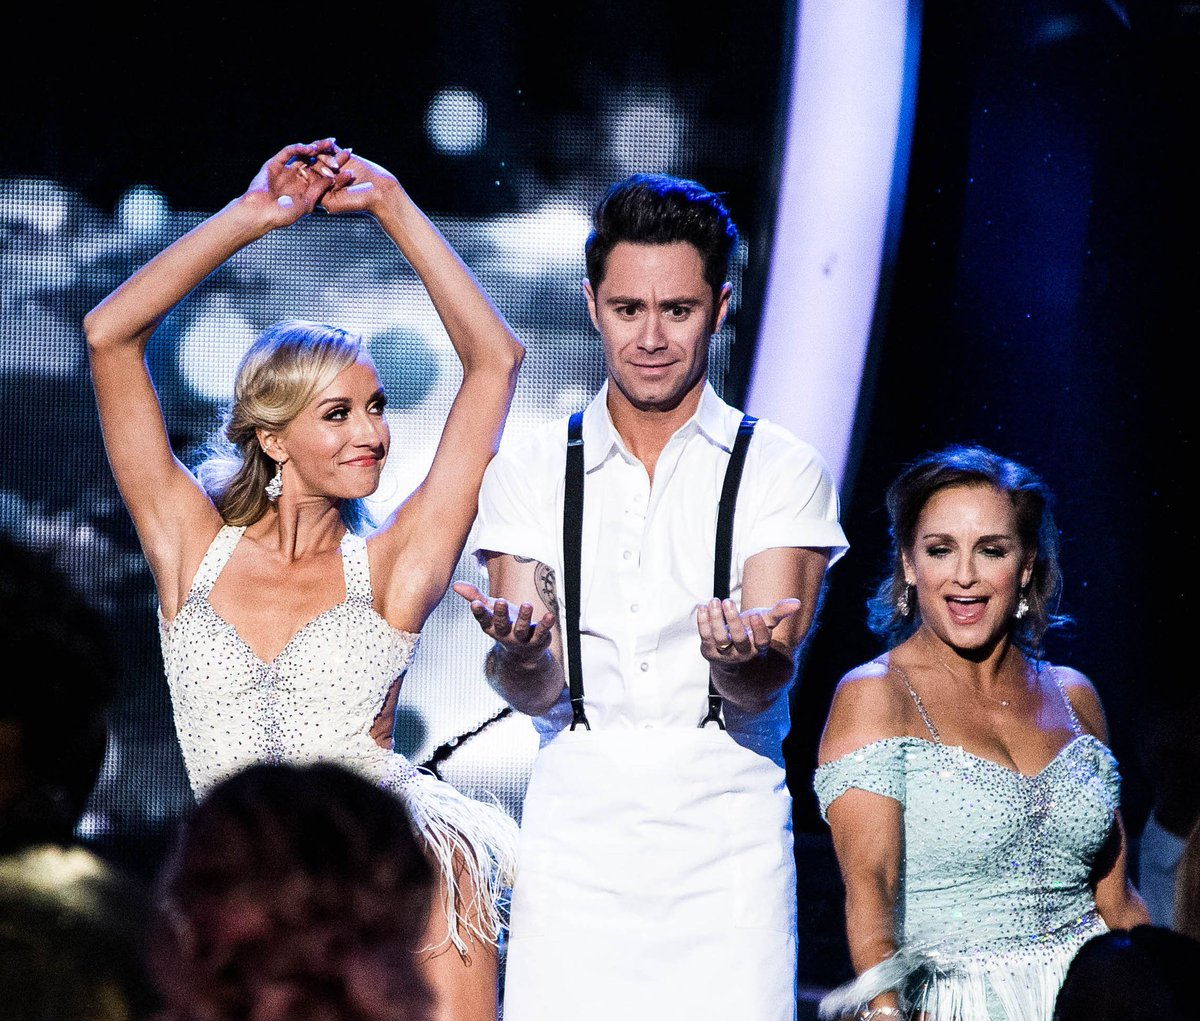 When you're placed between Olympic greats. @NastiaLiukin & @marylouretton's 10 Olympic medals will do that to you, @SashaFarber. 📸: @dancingabc   #DWTS